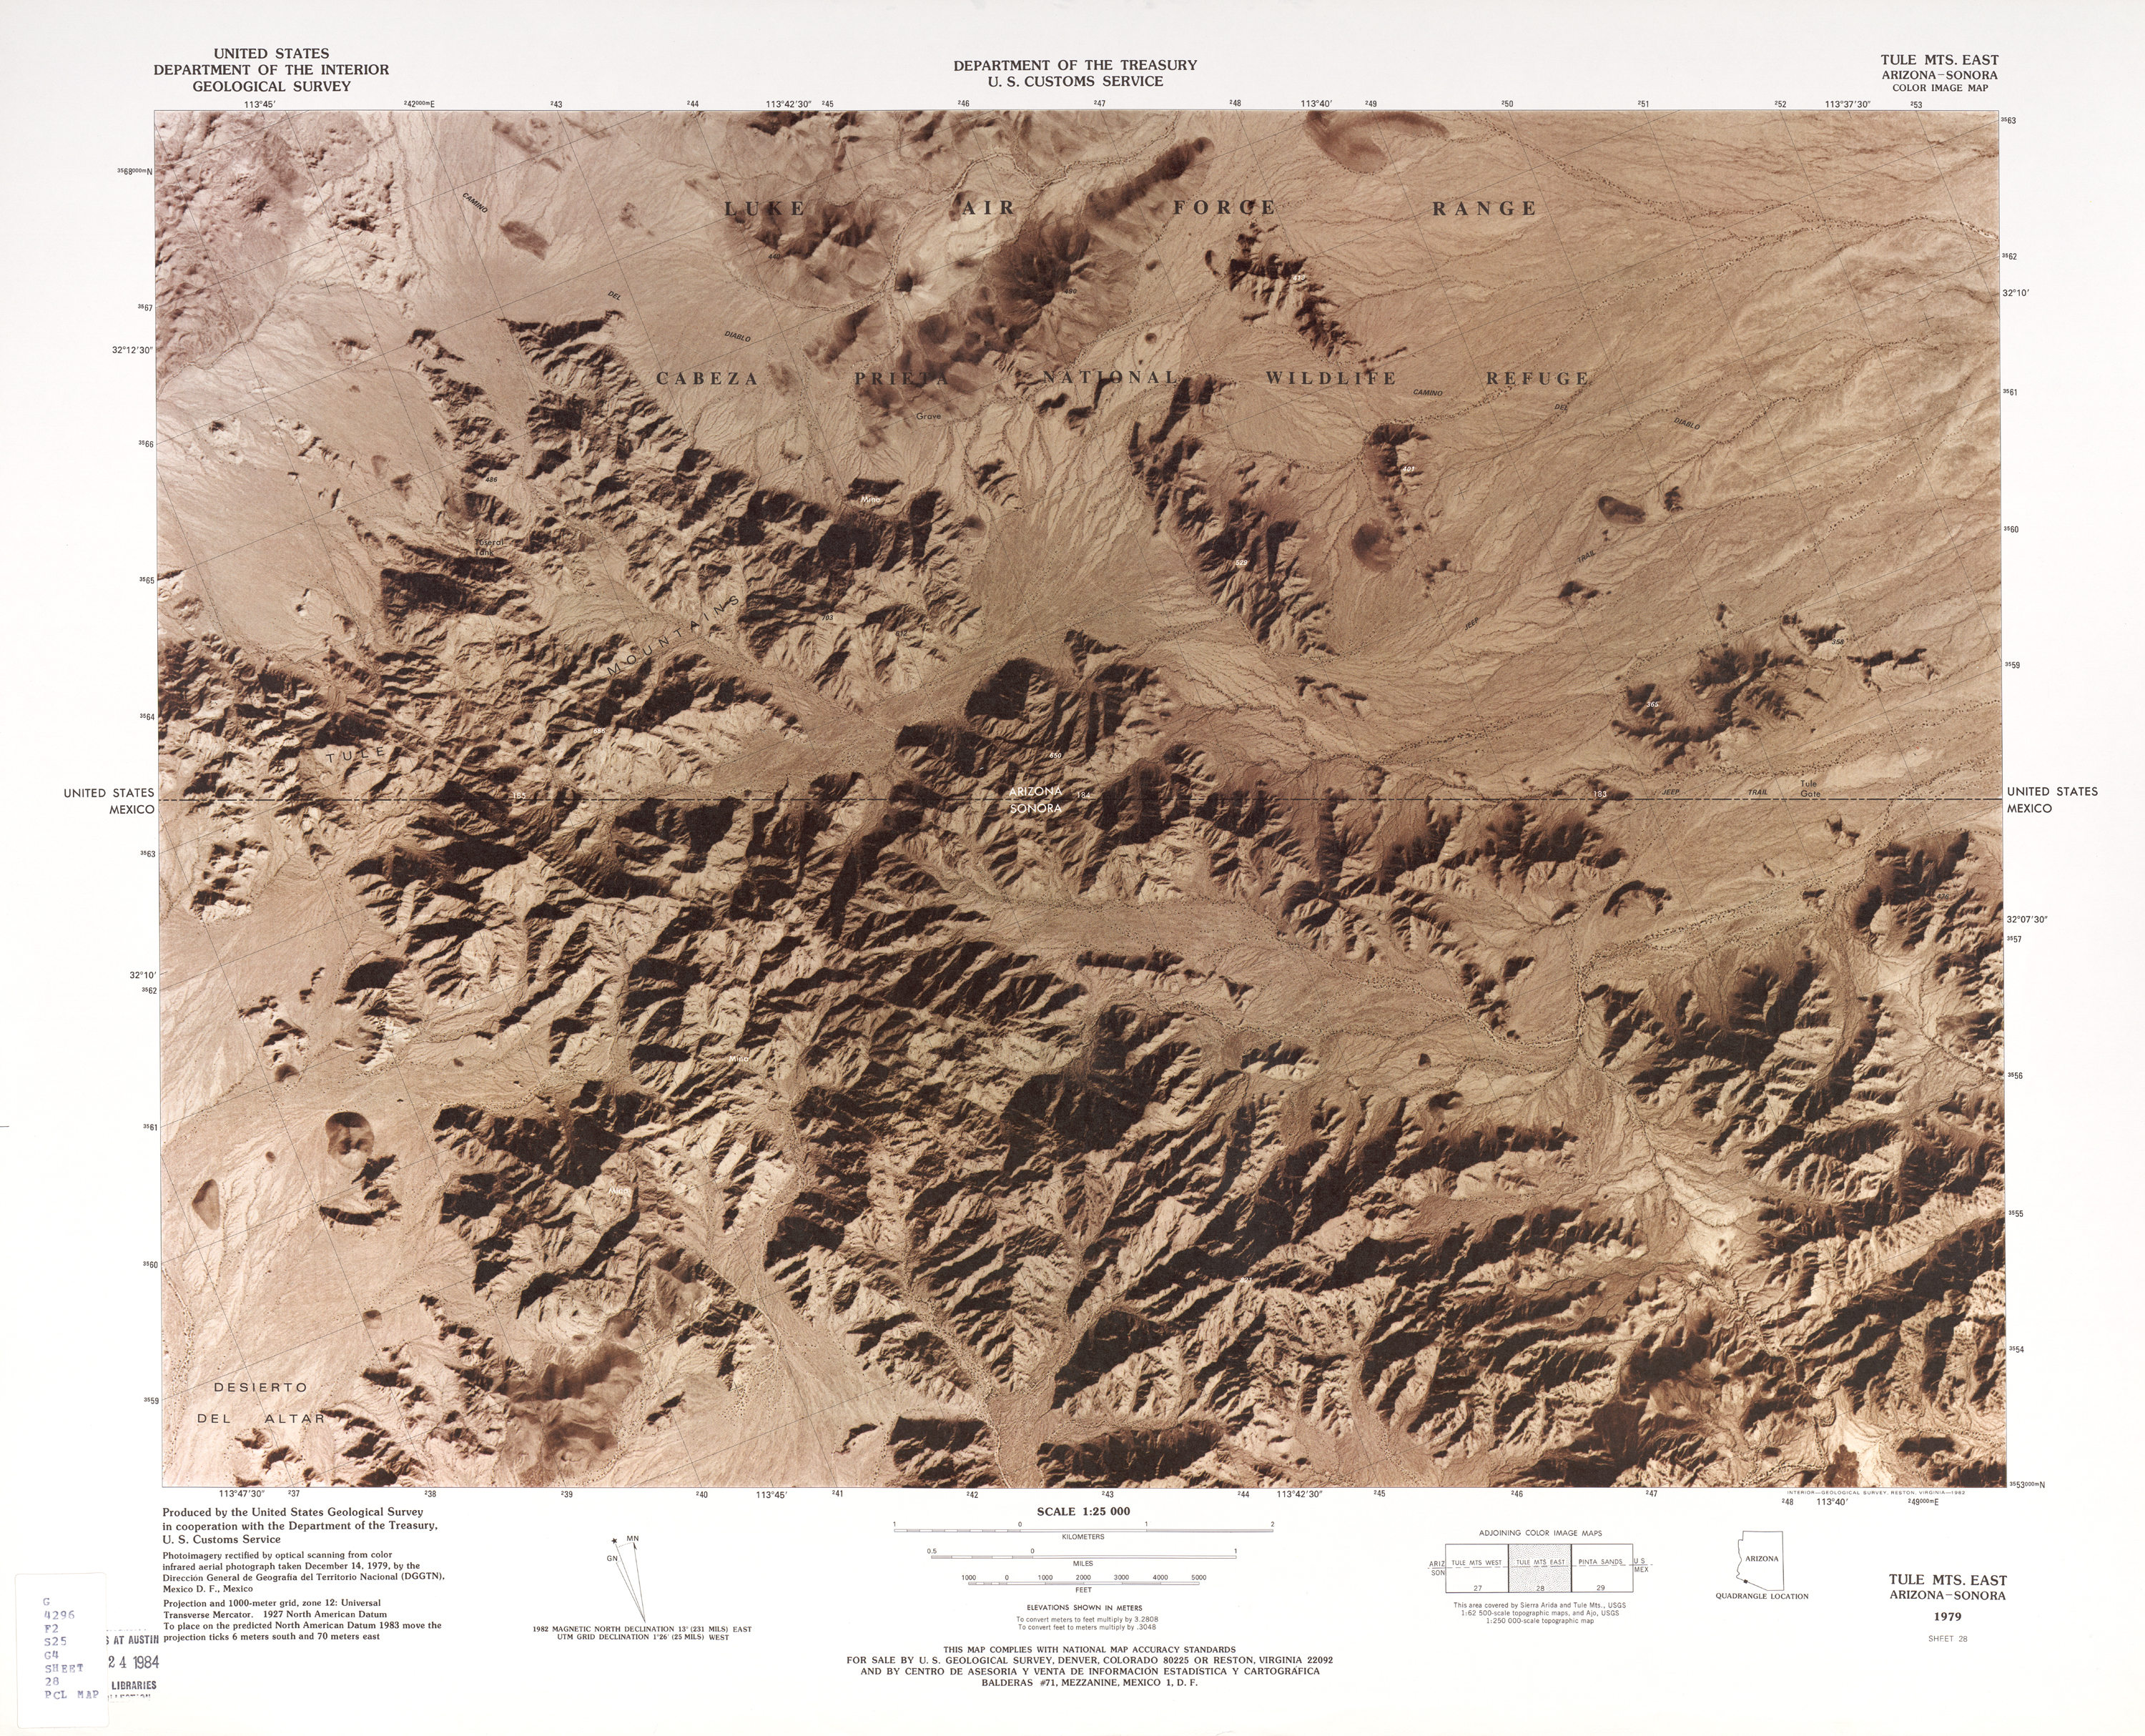 United States-Mexico Border Map, Tule Mts. East